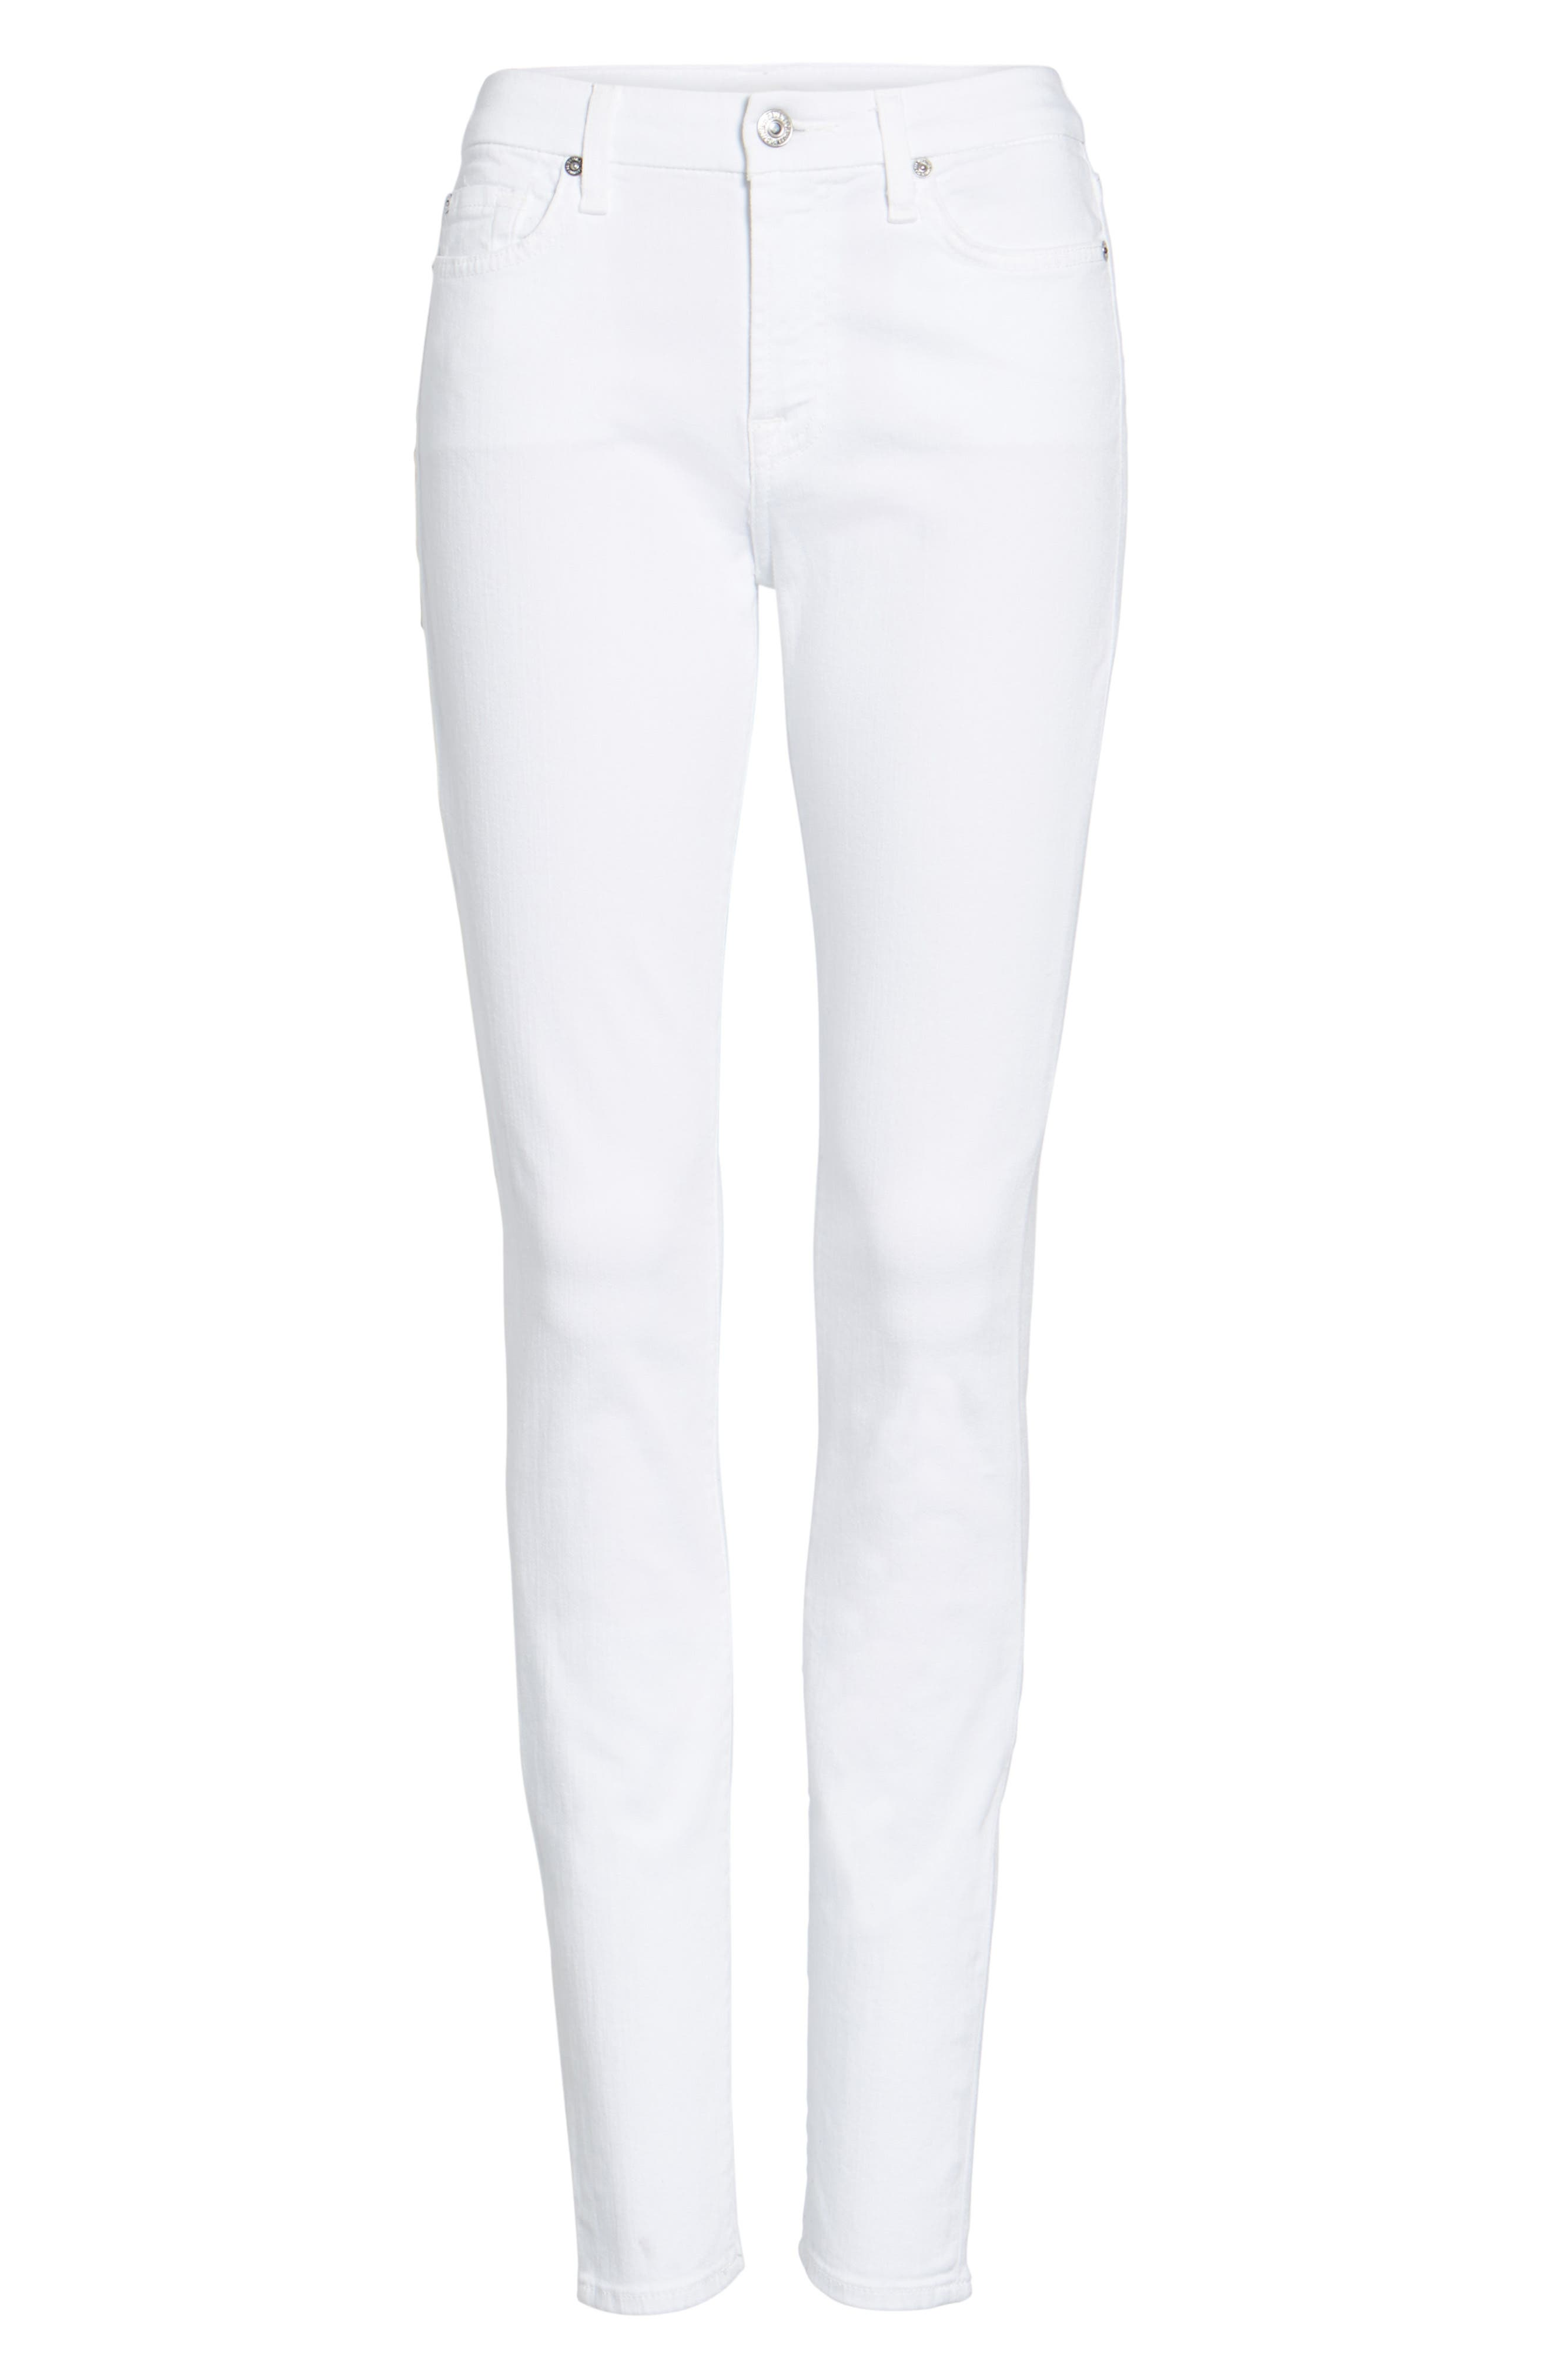 'The Skinny' Skinny Jeans,                             Alternate thumbnail 2, color,                             CLEAN WHITE